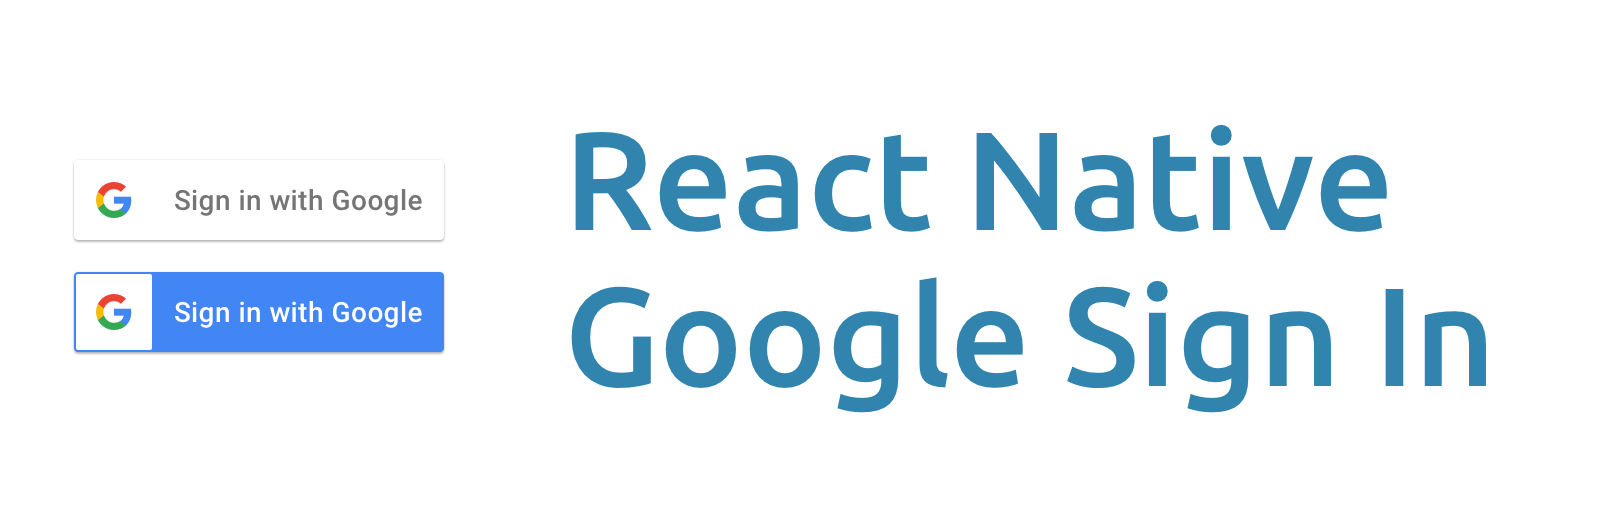 React Native Google Sign In